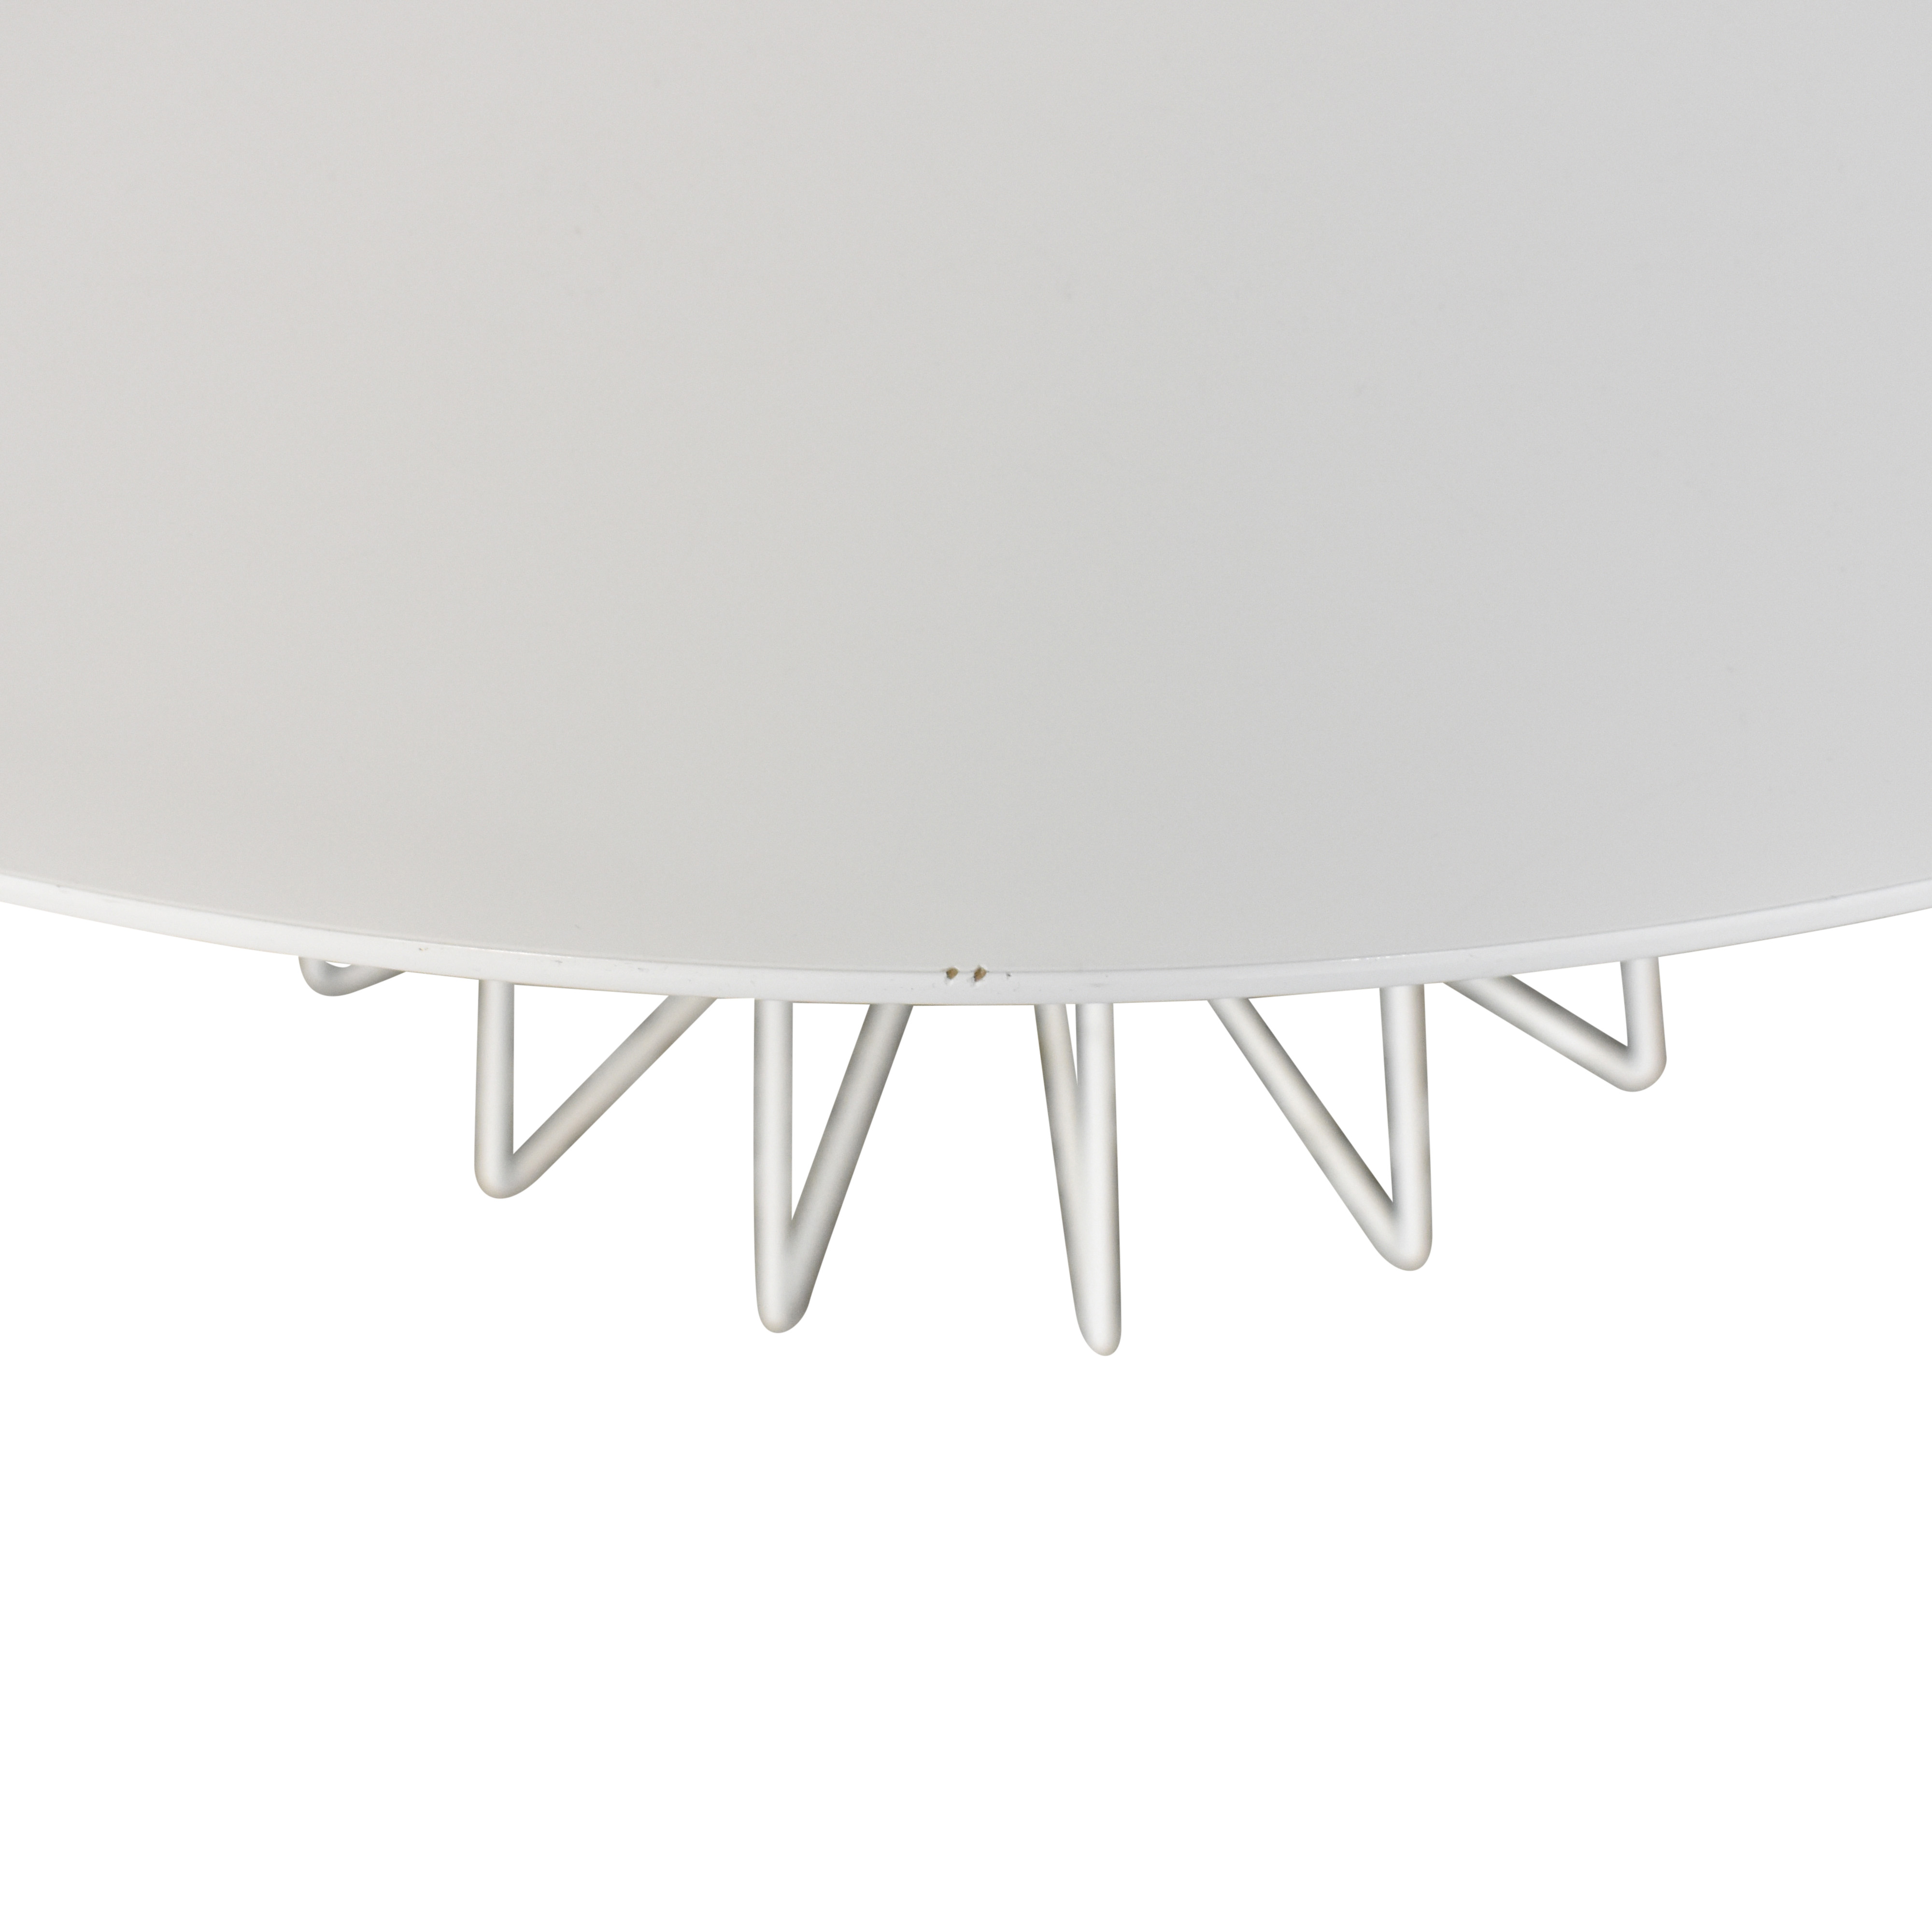 CB2 Compass Dining Table sale